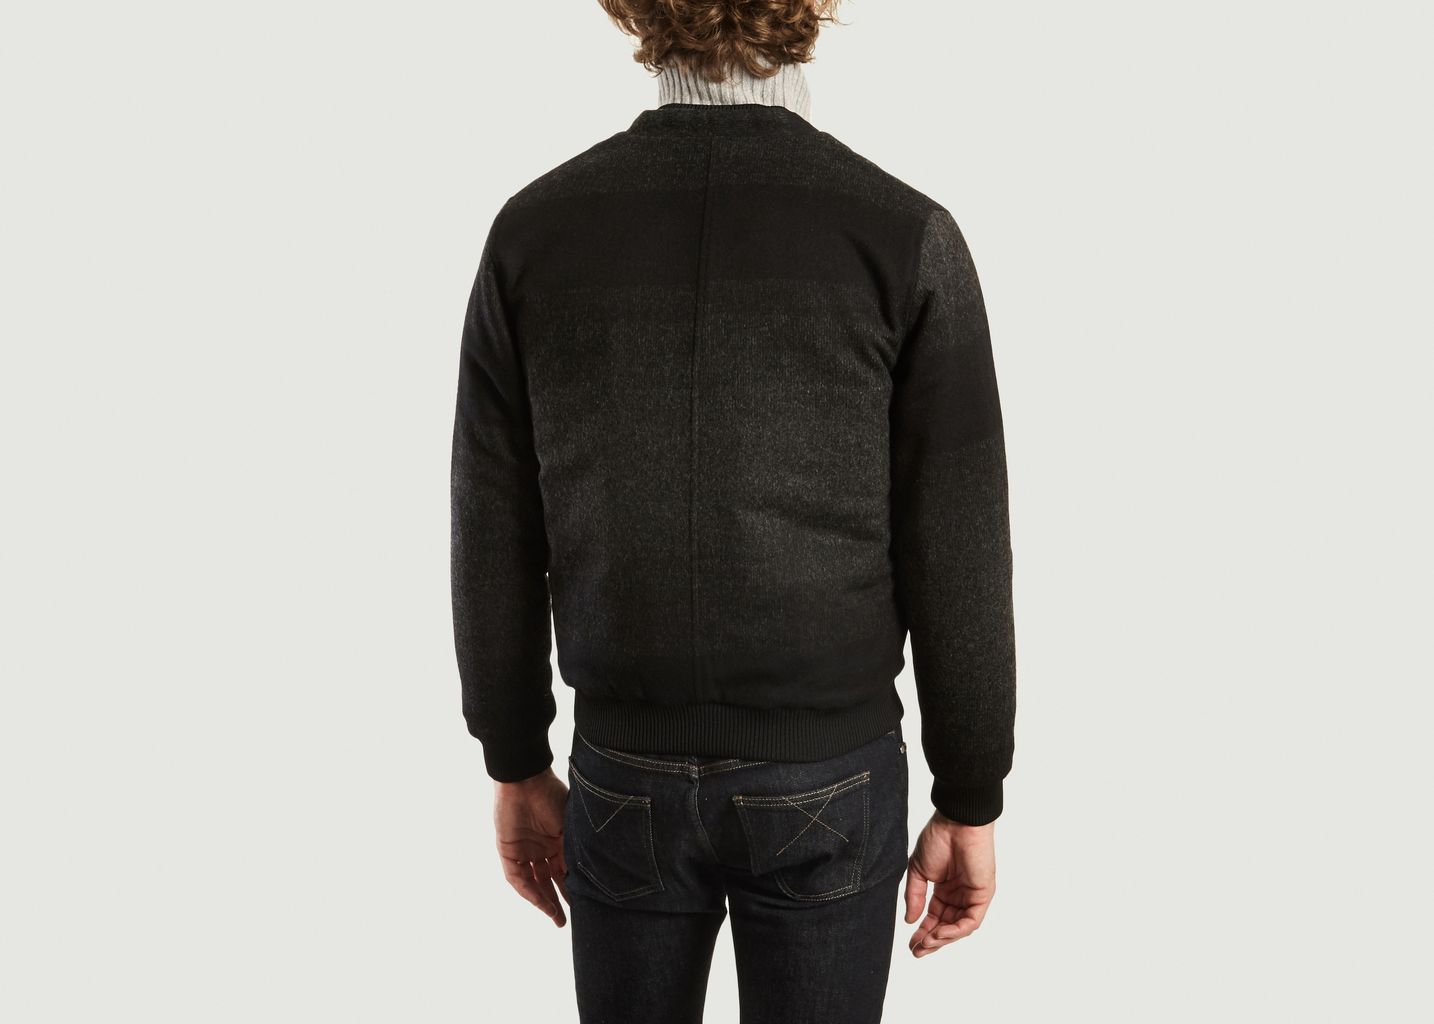 Bomber En Tweed Anatole - Commune de Paris